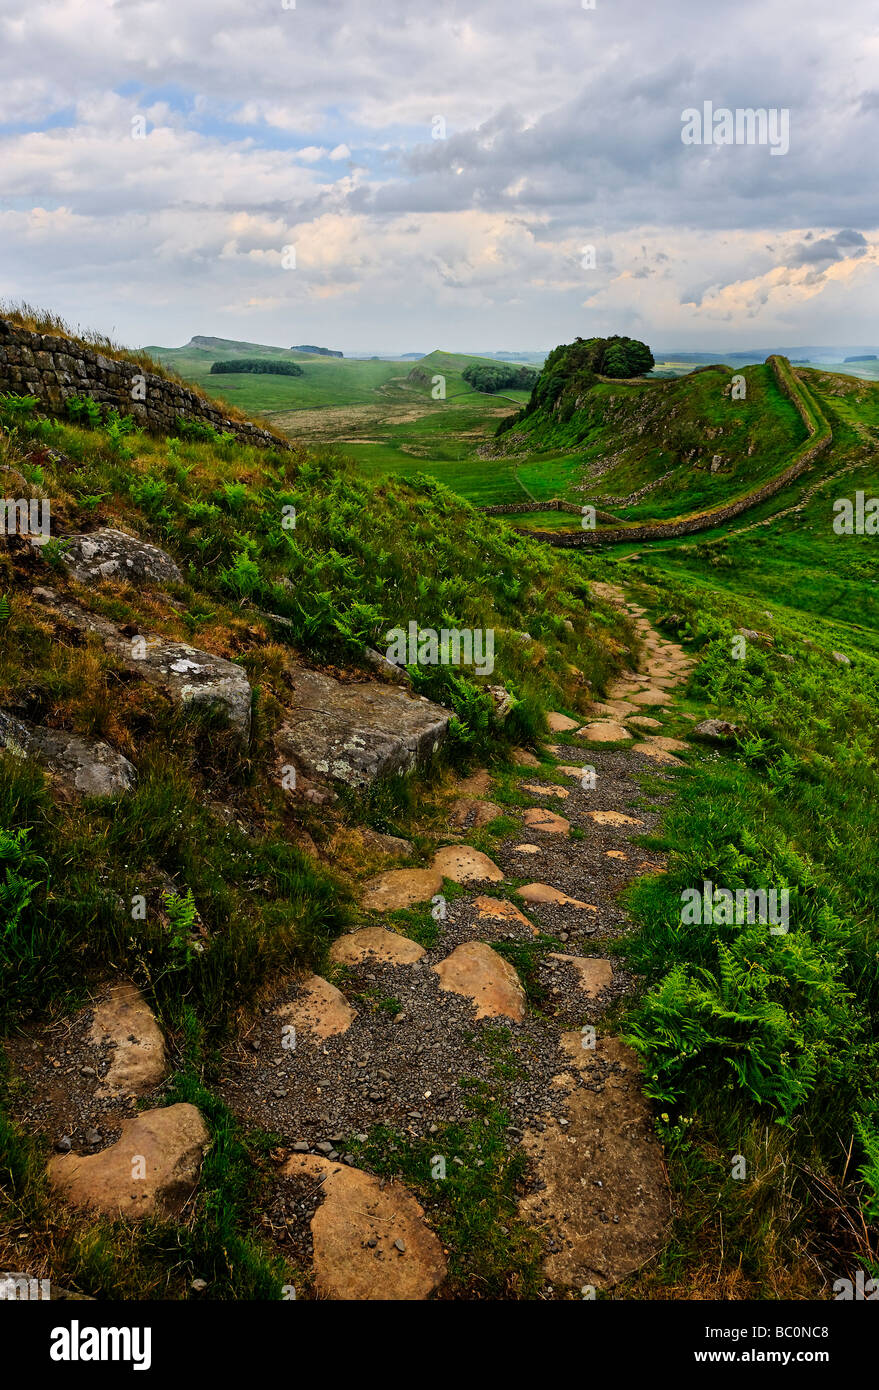 Looking east over a combined stretch of the Hadrian's Wall path and Pennine Way long distance footpaths in Northumberland - Stock Image